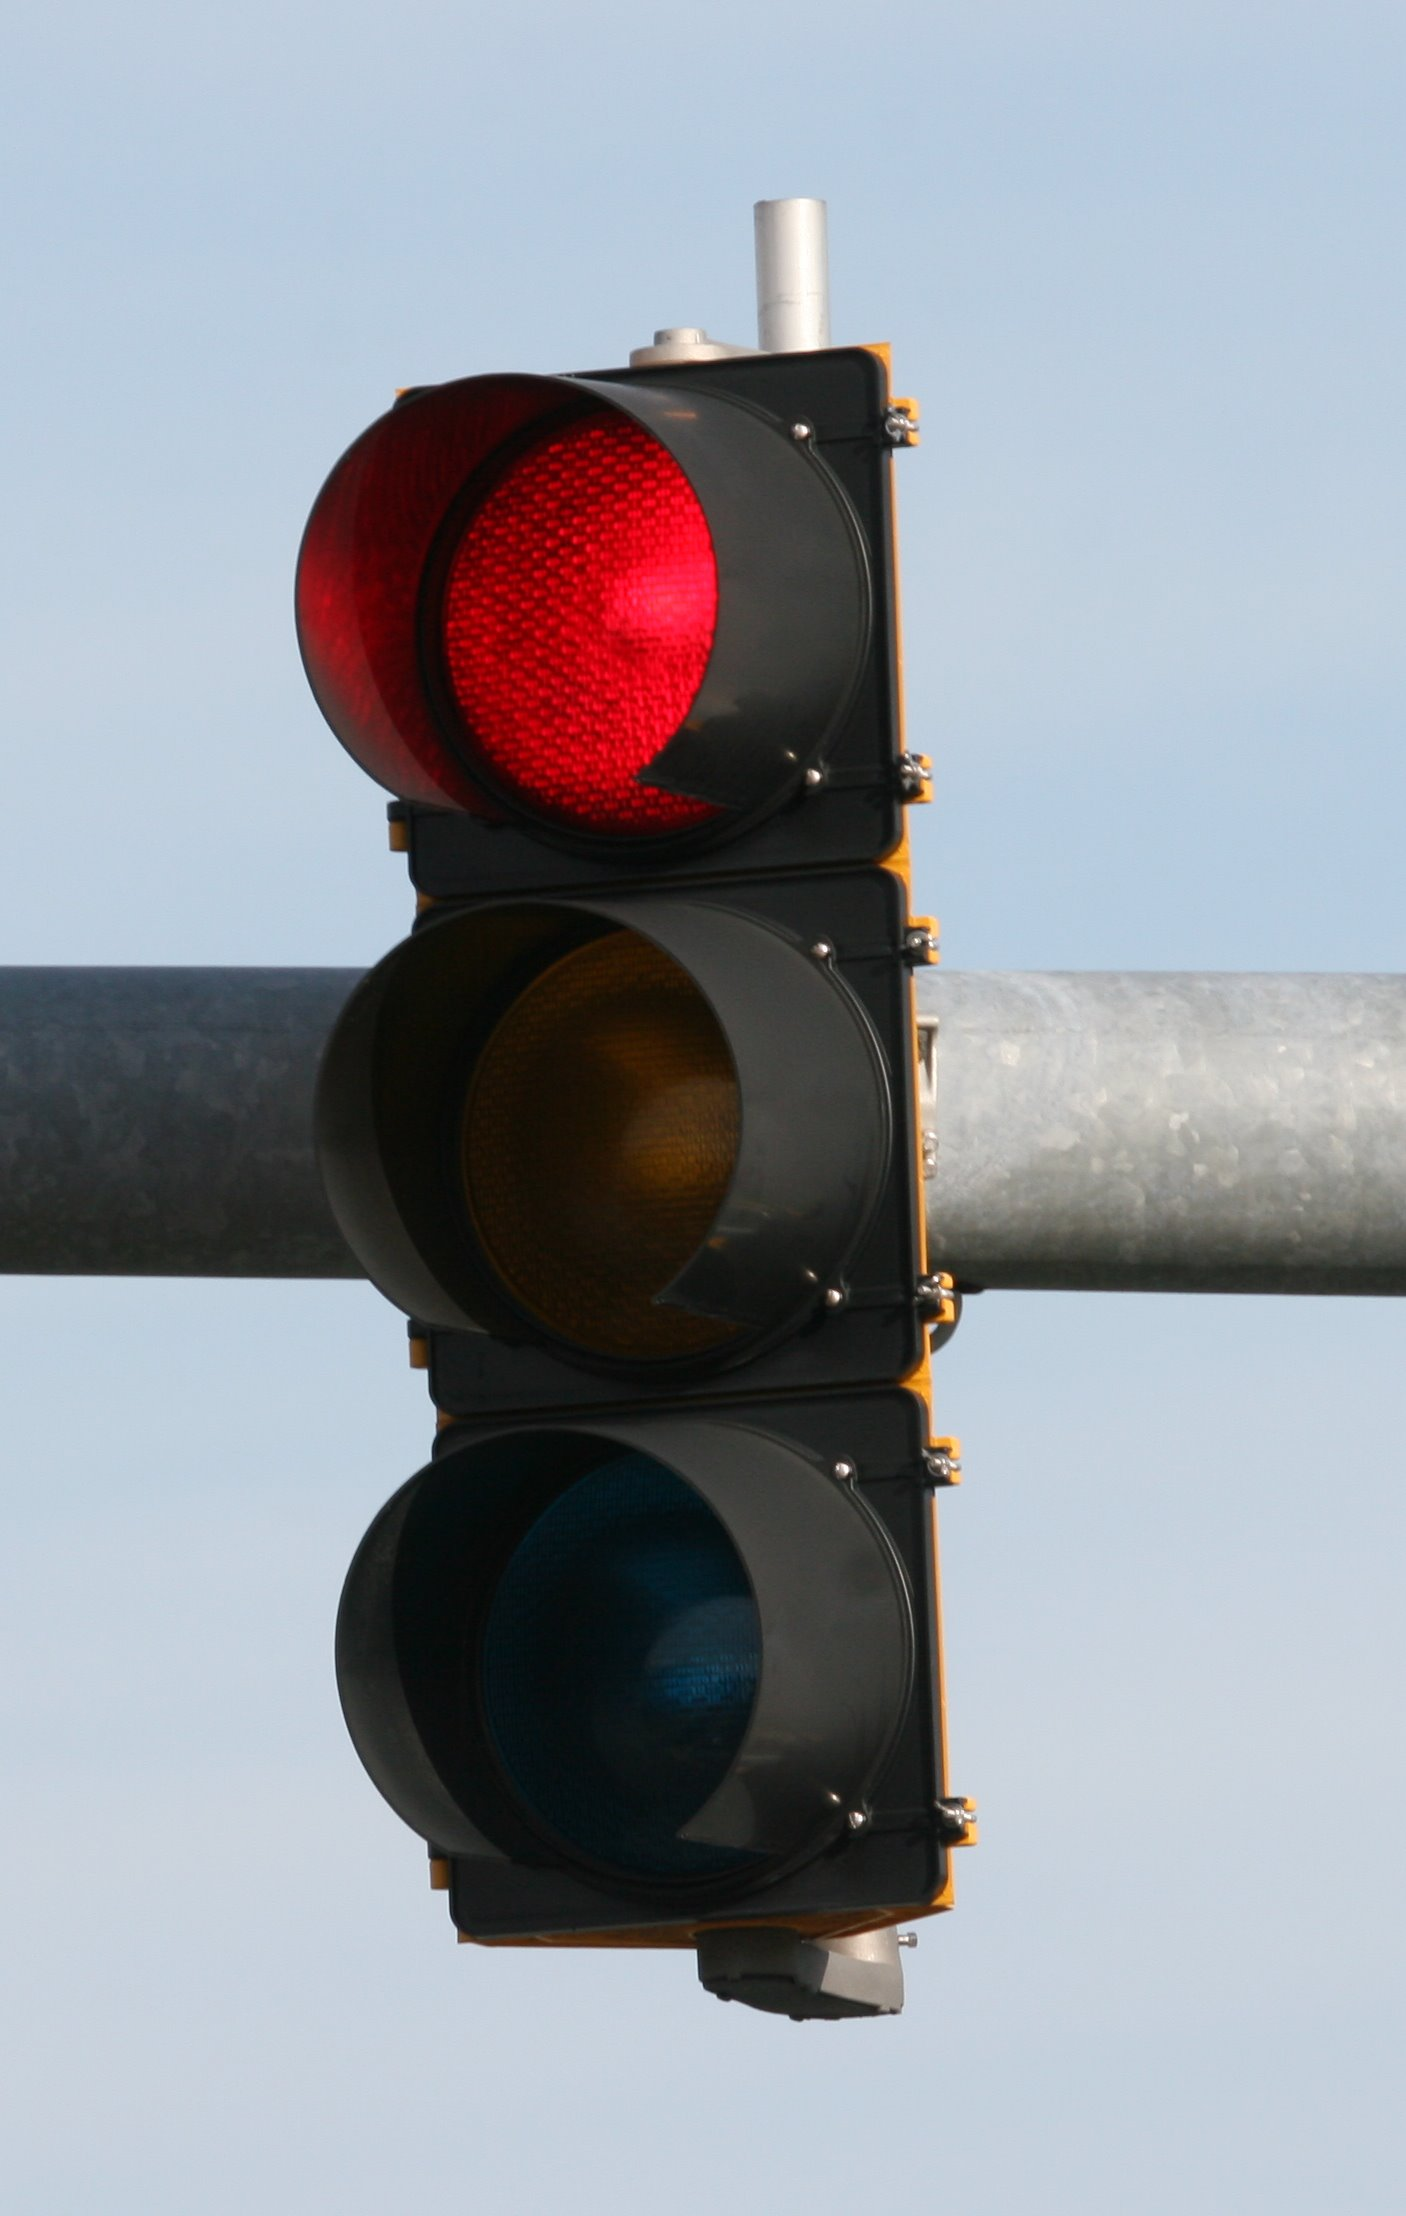 how to avoid running red lights